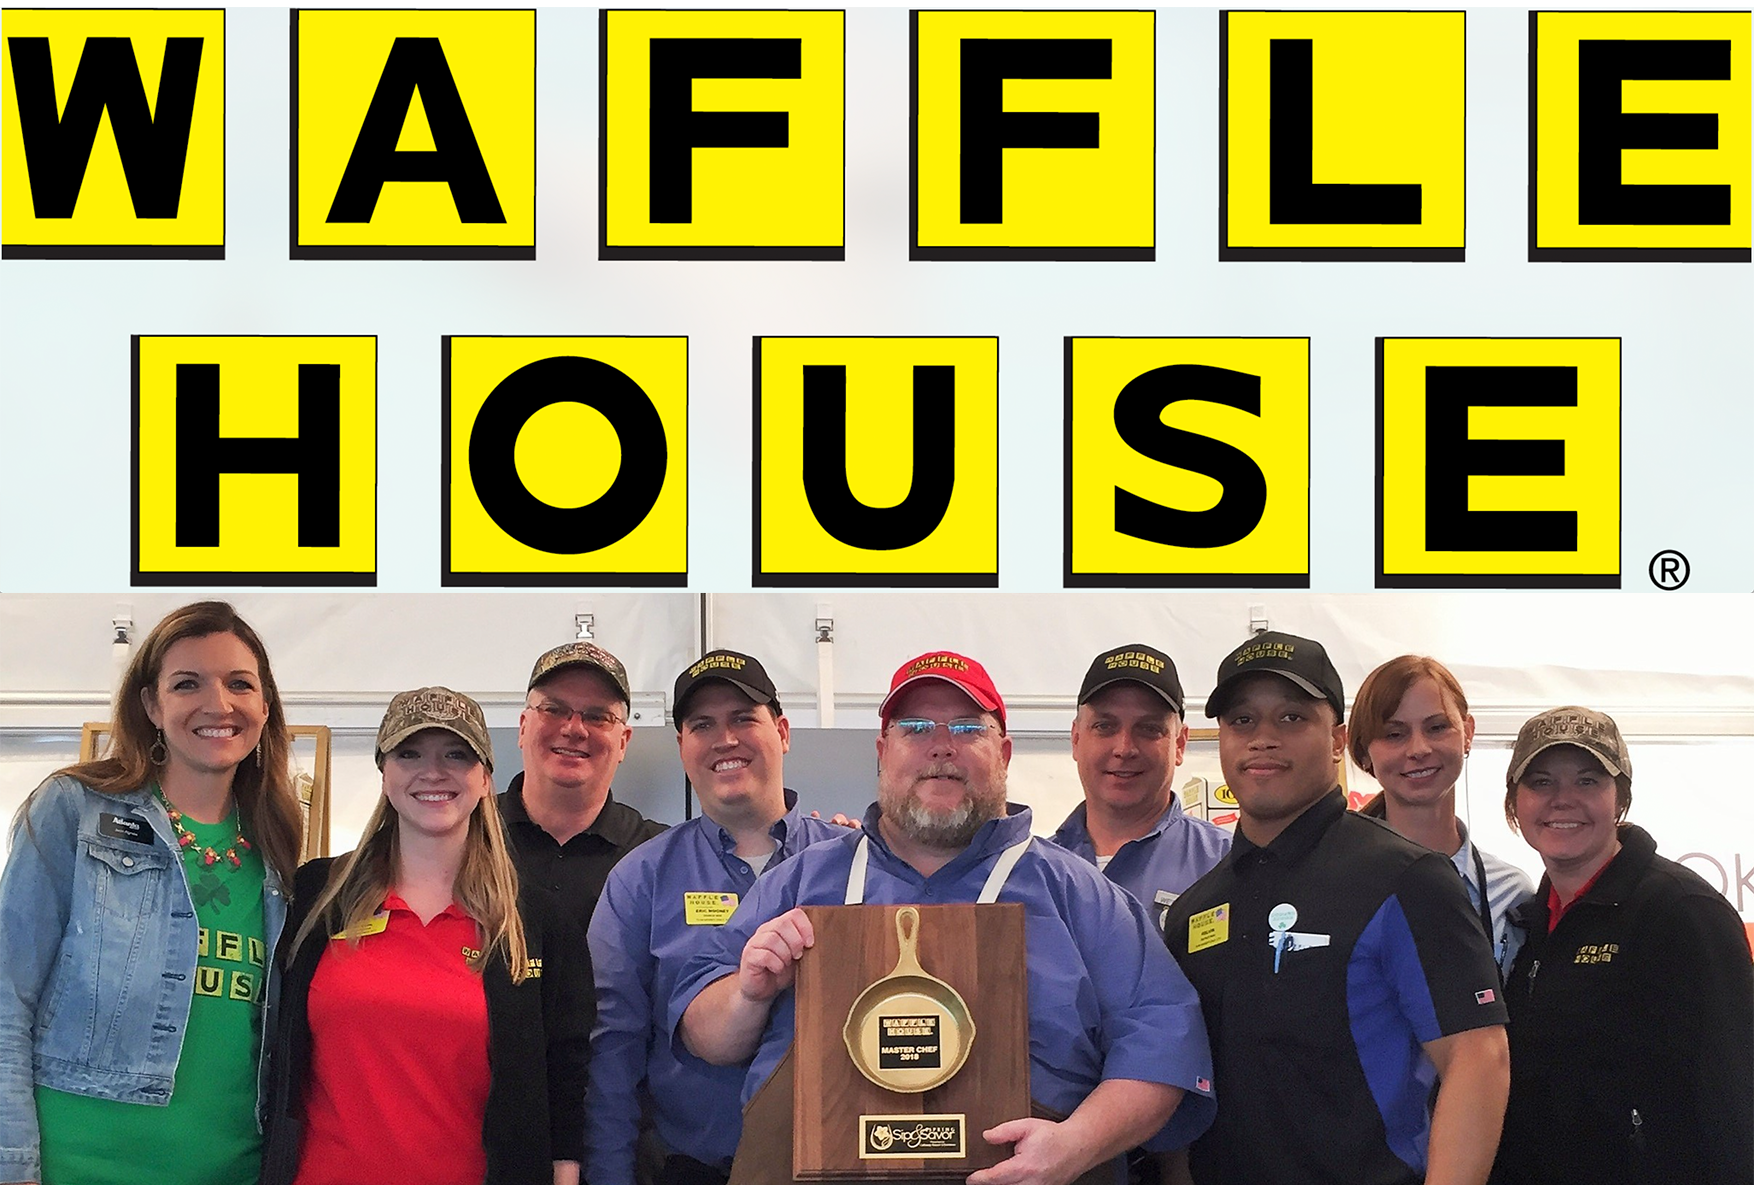 Waffle House Dinner at Local Three